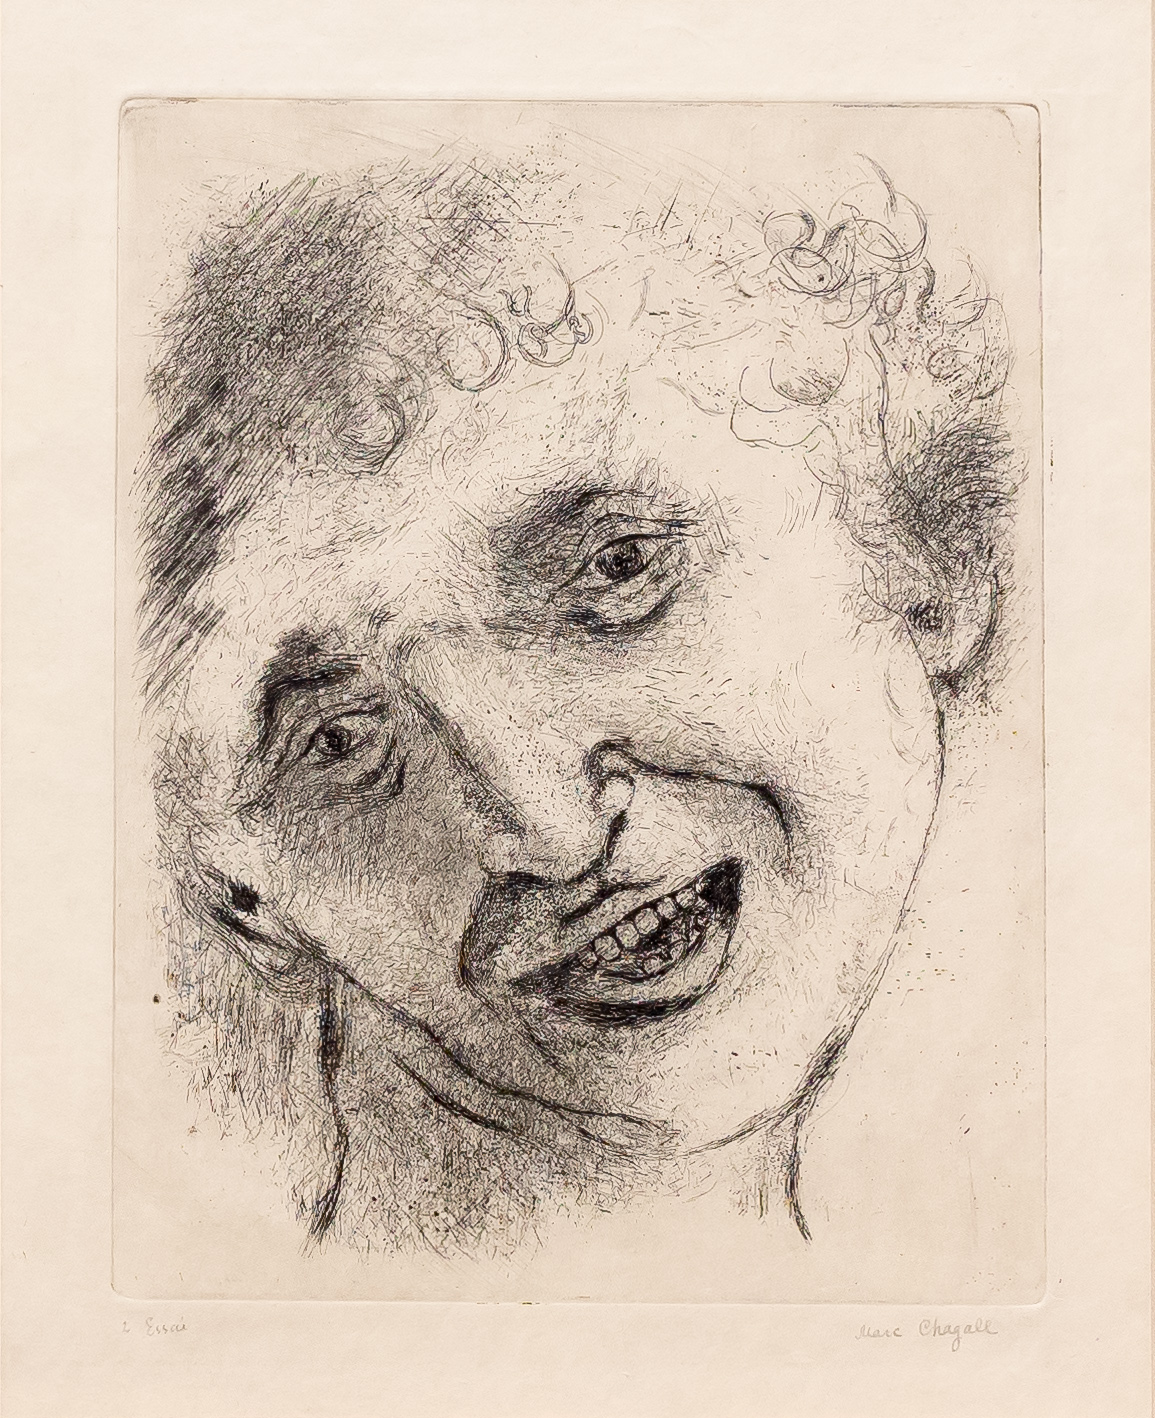 Self Portrait with a Laughing Expression